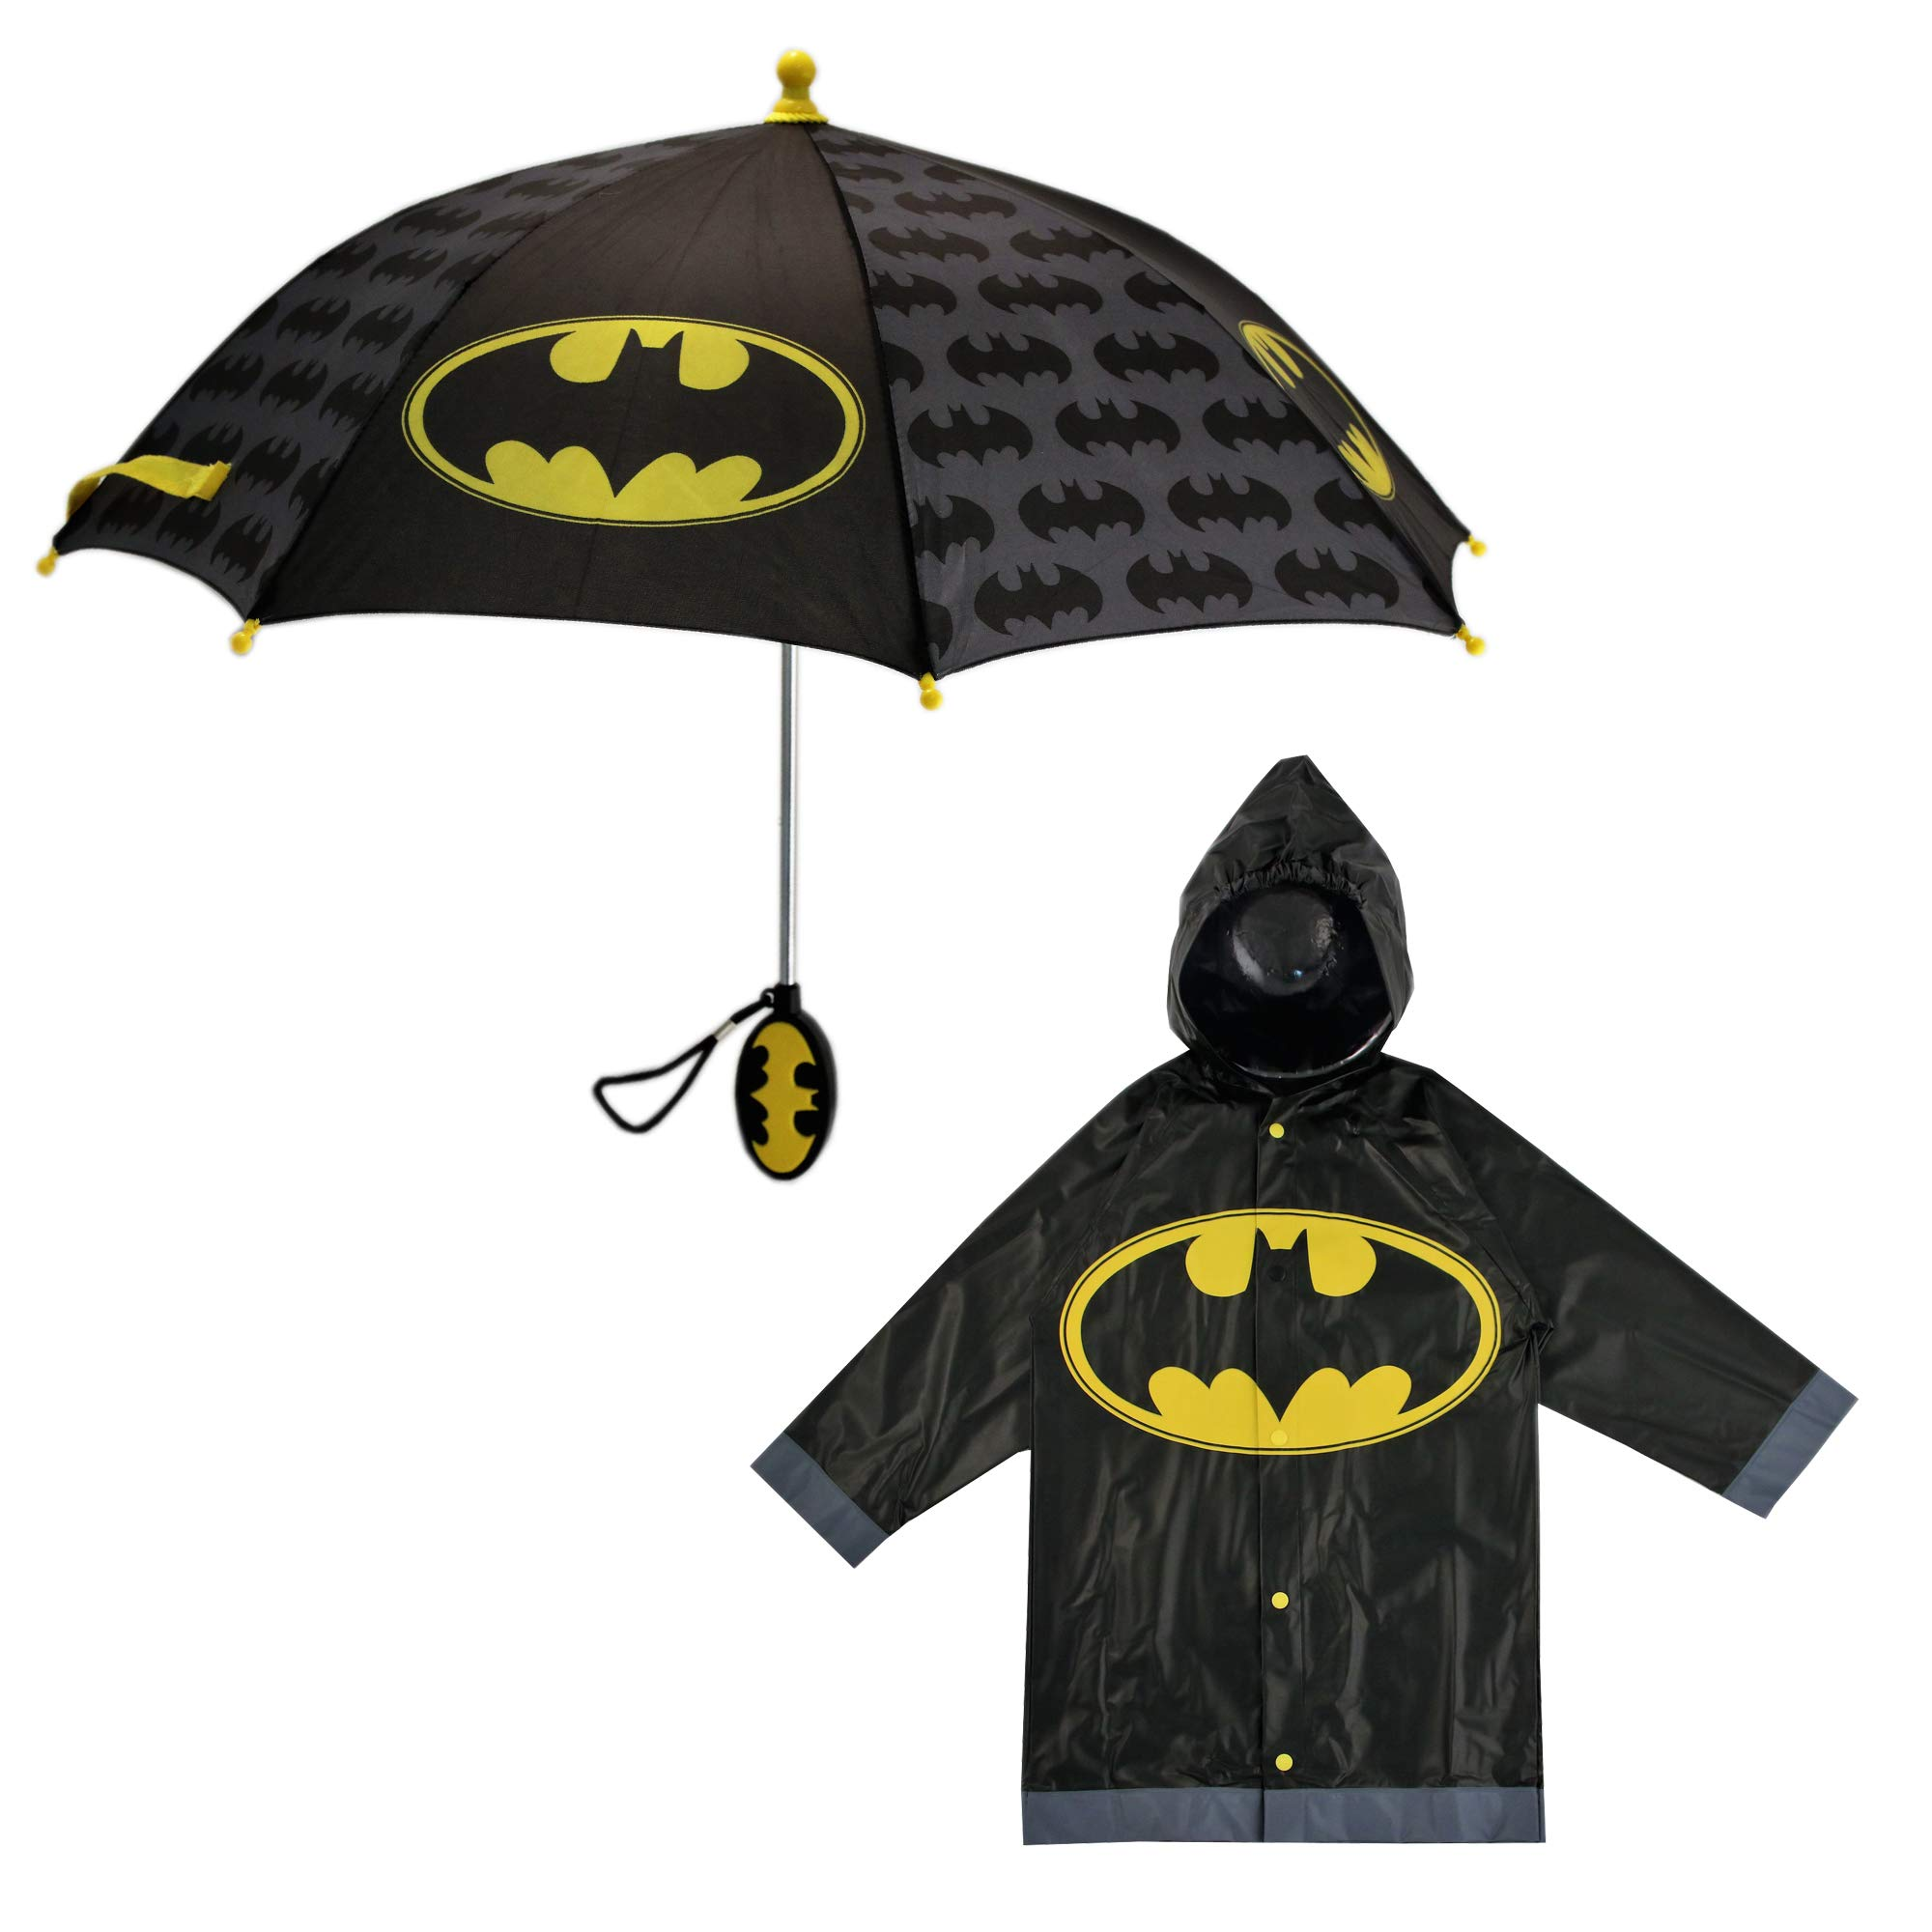 DC Comics Boys' Little Batman Character Slicker and Umbrella Rainwear Set, Black, Age 6-7